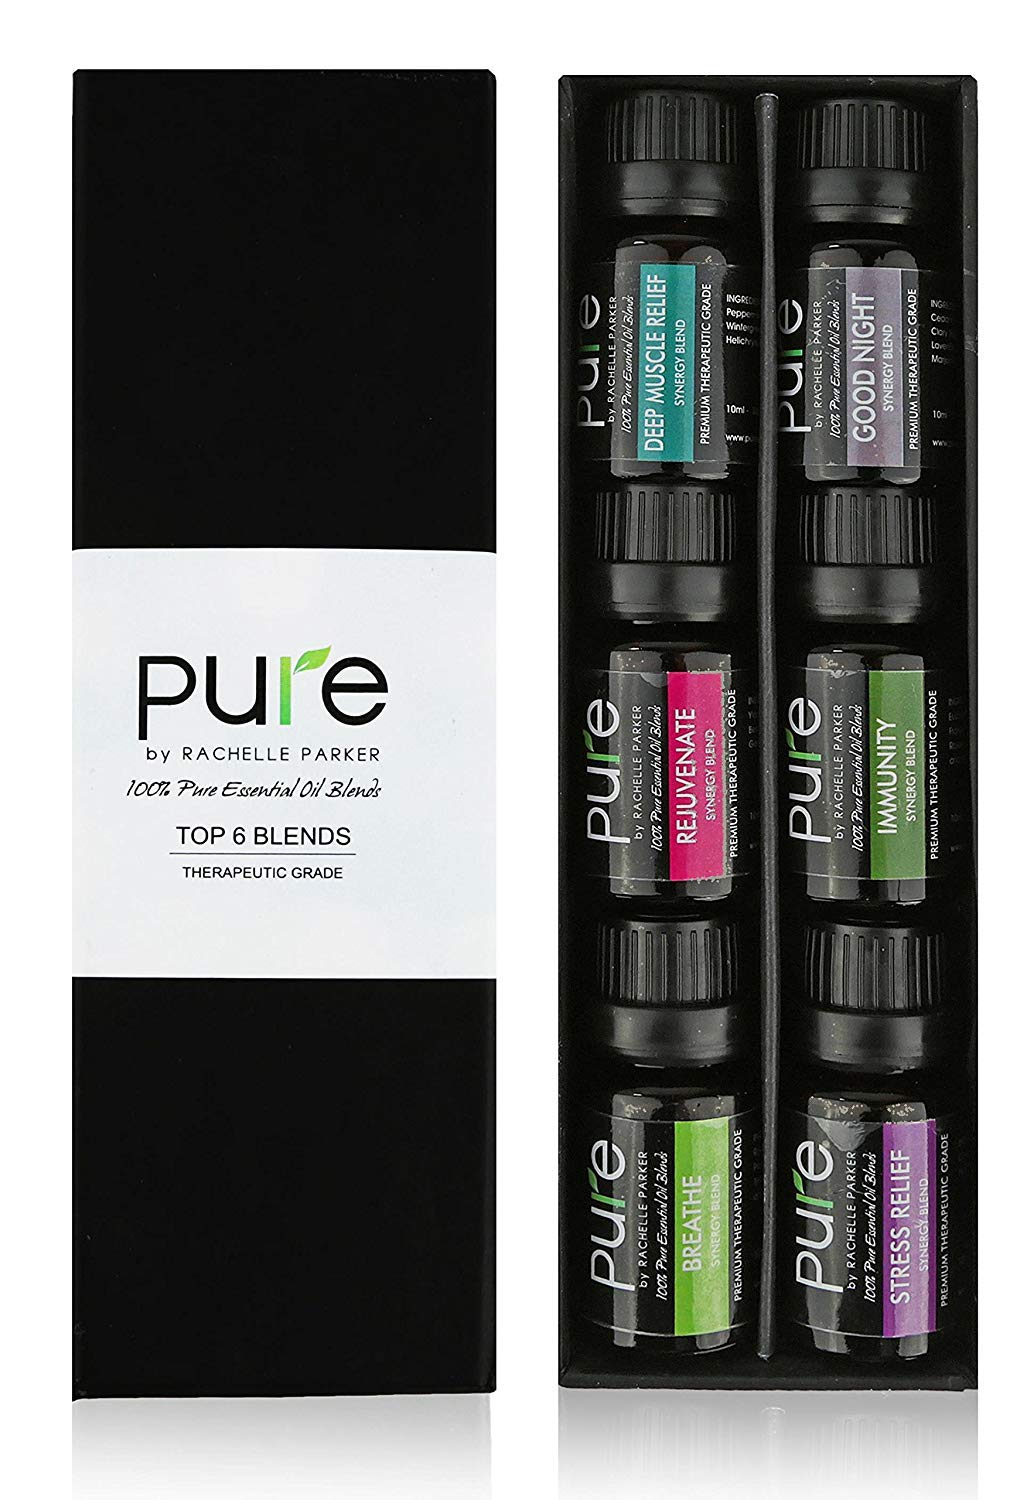 PURE Essential Oil Blends.Gift pack 6 Synergy Blend Set. Synergy Essential Oil Blend Beginner Starter Set Includes Good Night, Muscle Relief,Rejuvenate, Immunity, Breath & Stress Relief Oil Blends…